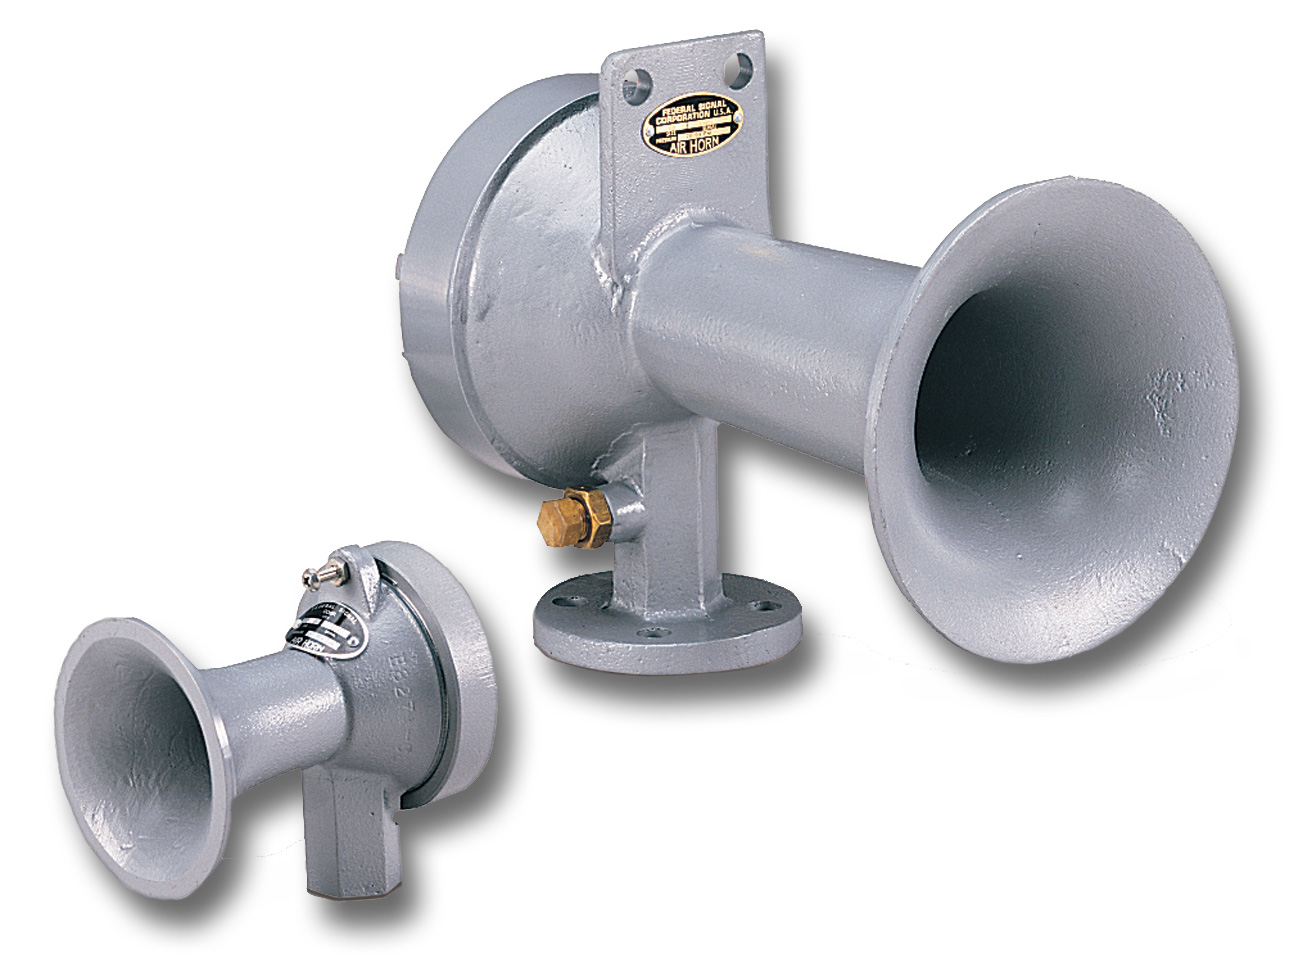 3H and 6H Air Horn Signals